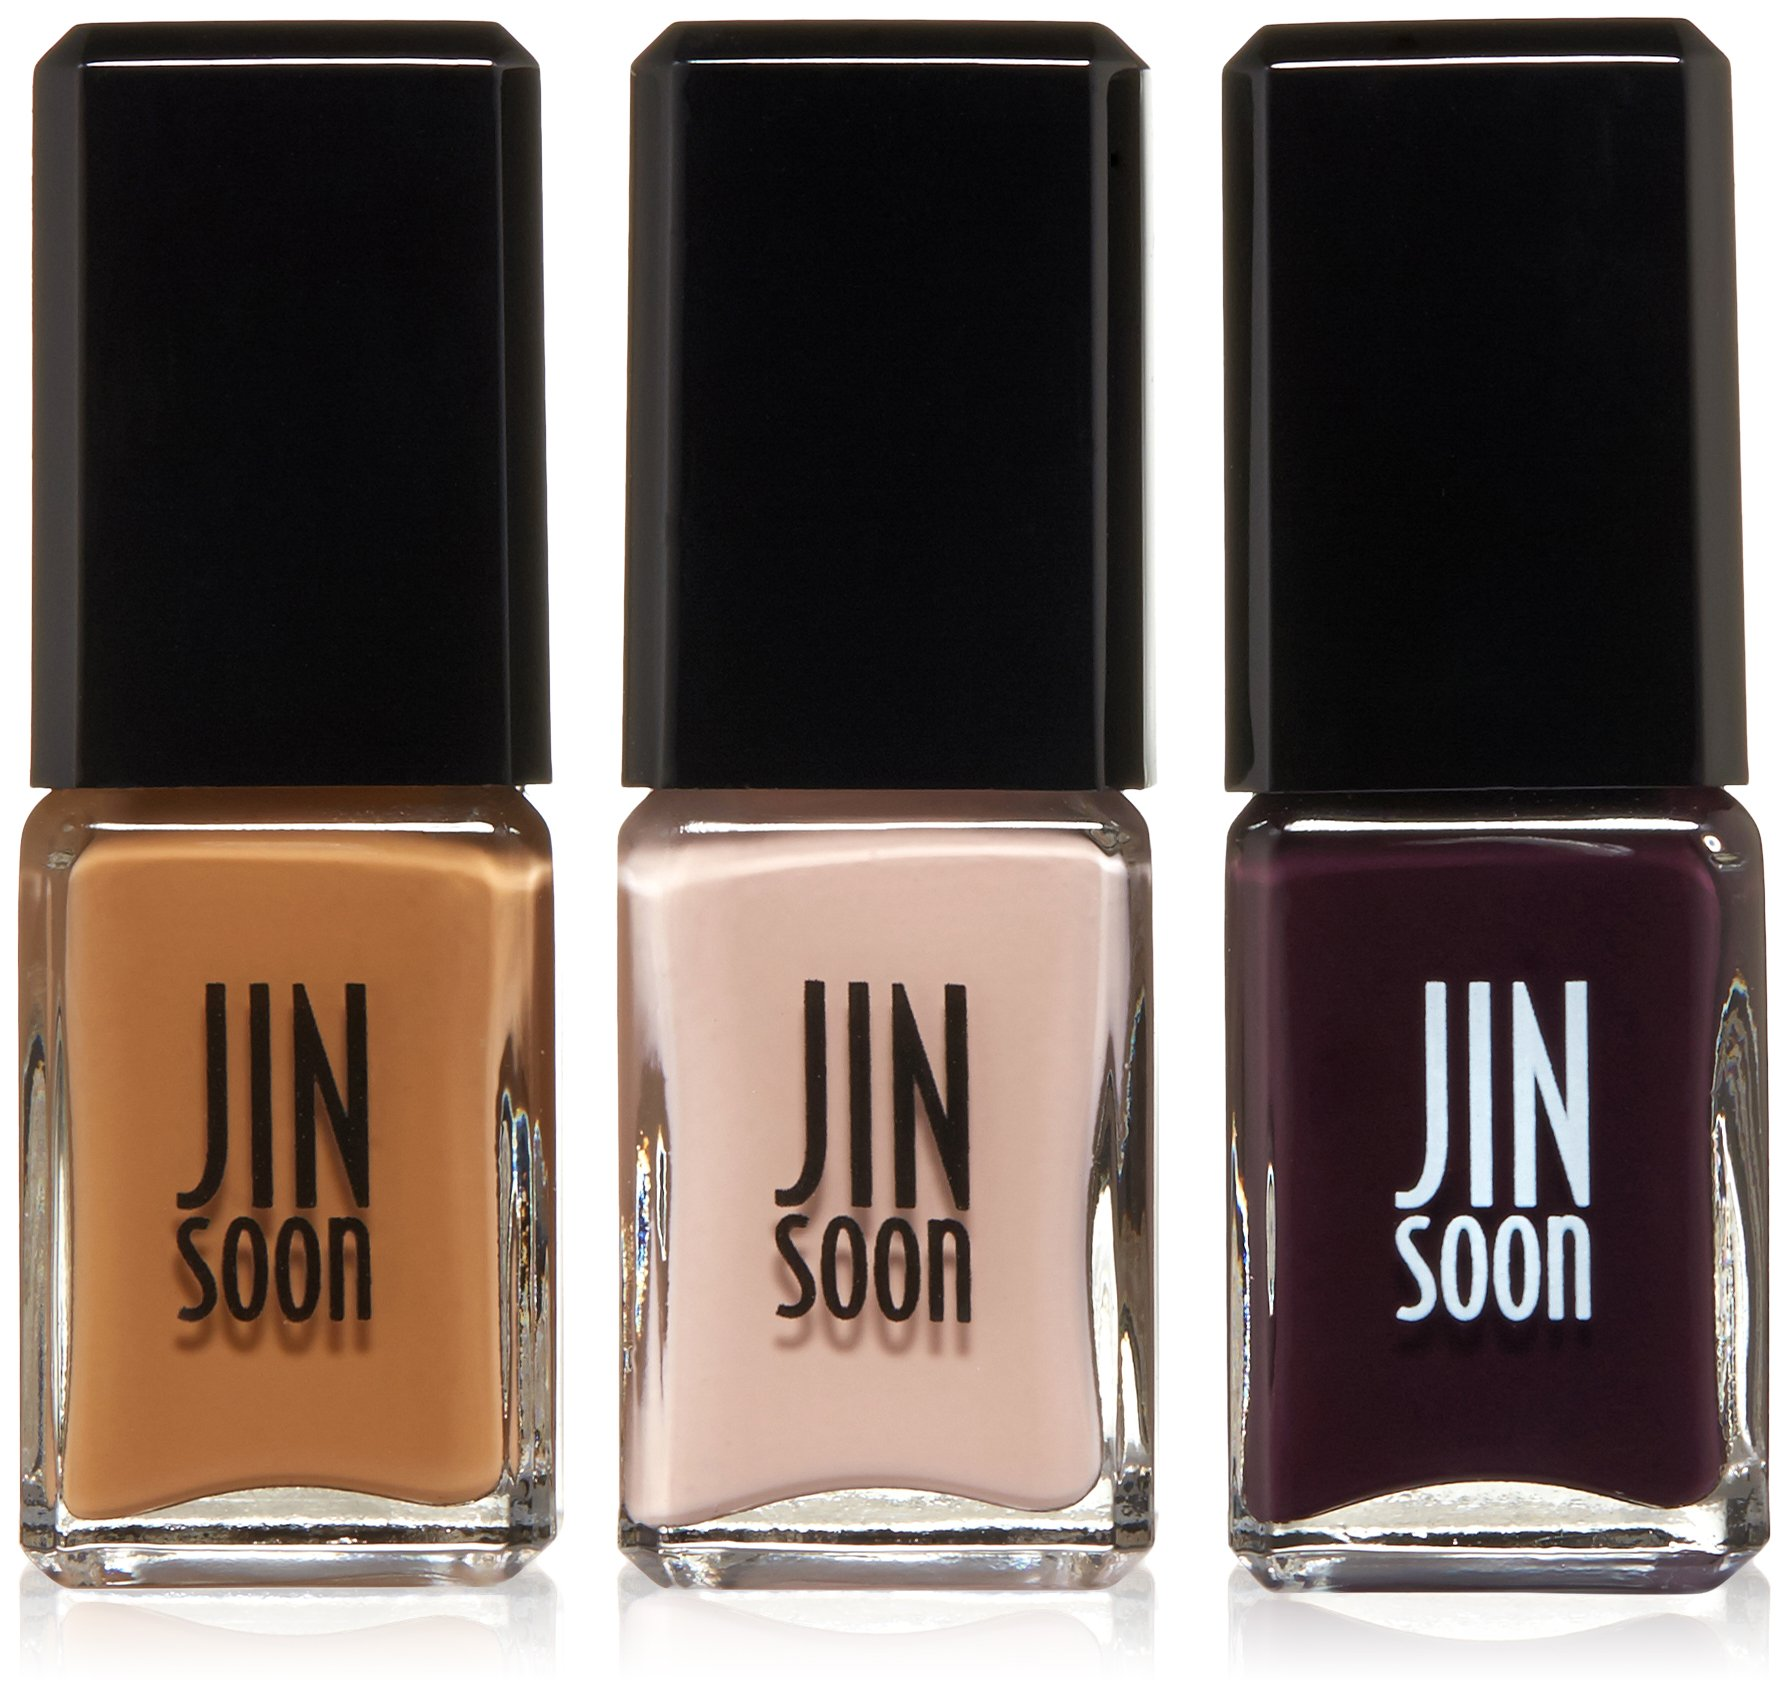 Amazon.com: JINsoon Pearl Collection Nail Polish, 1 fl. oz